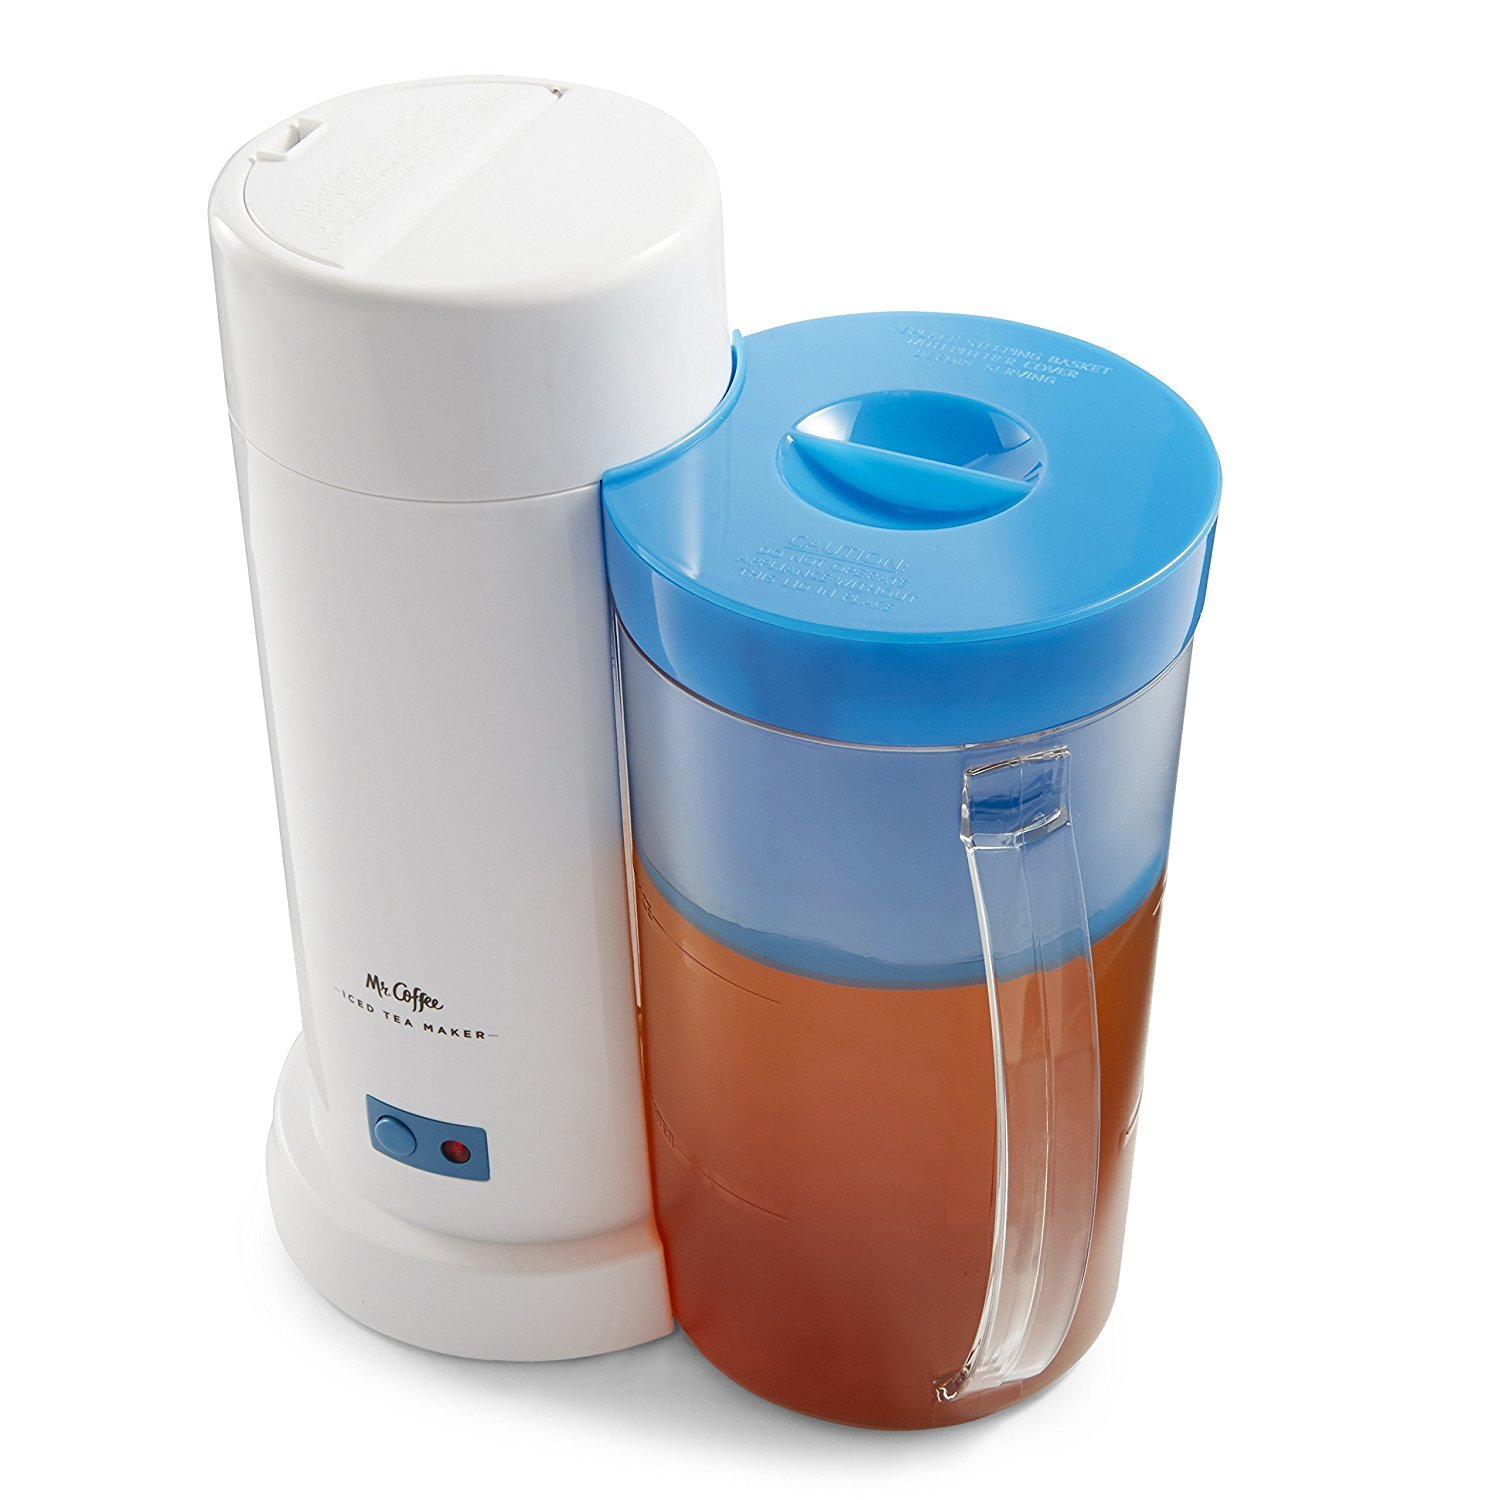 TM1 2-Quart Iced Tea Maker for Loose or Bagged Tea, Blue by Mr. Coffee. (Image #2)